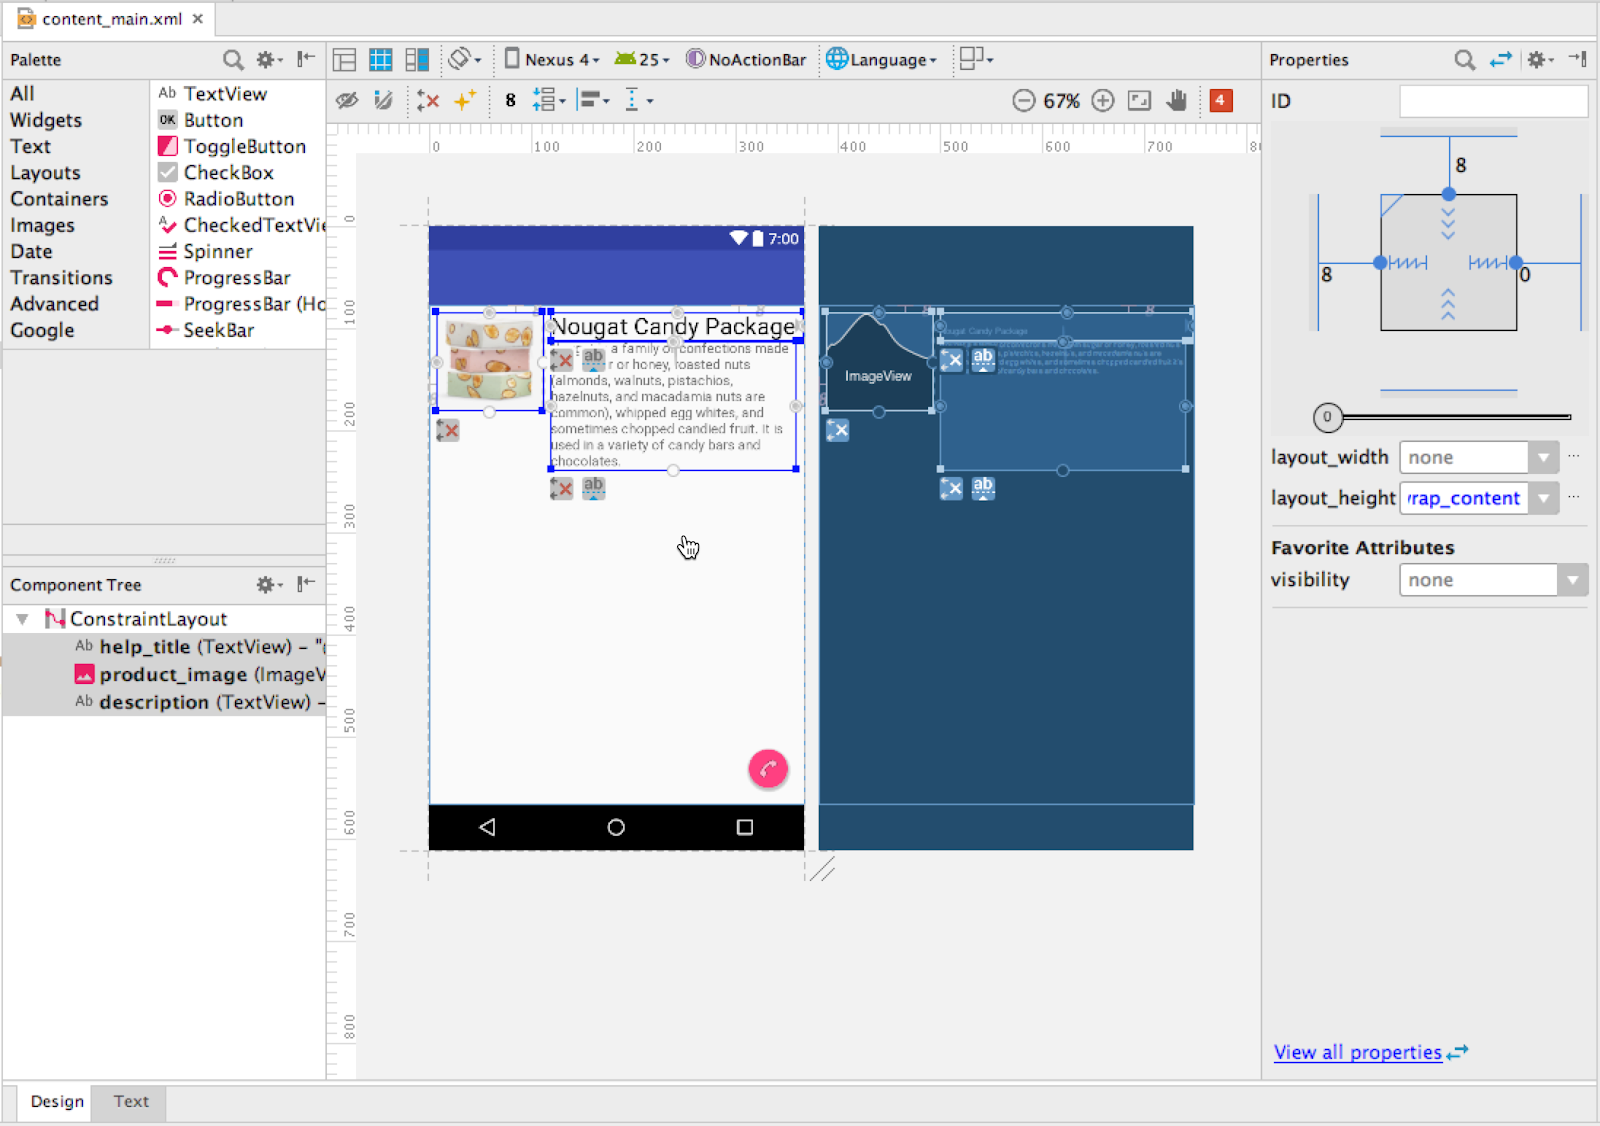 ConstraintLayout with an ImageView and two TextViews